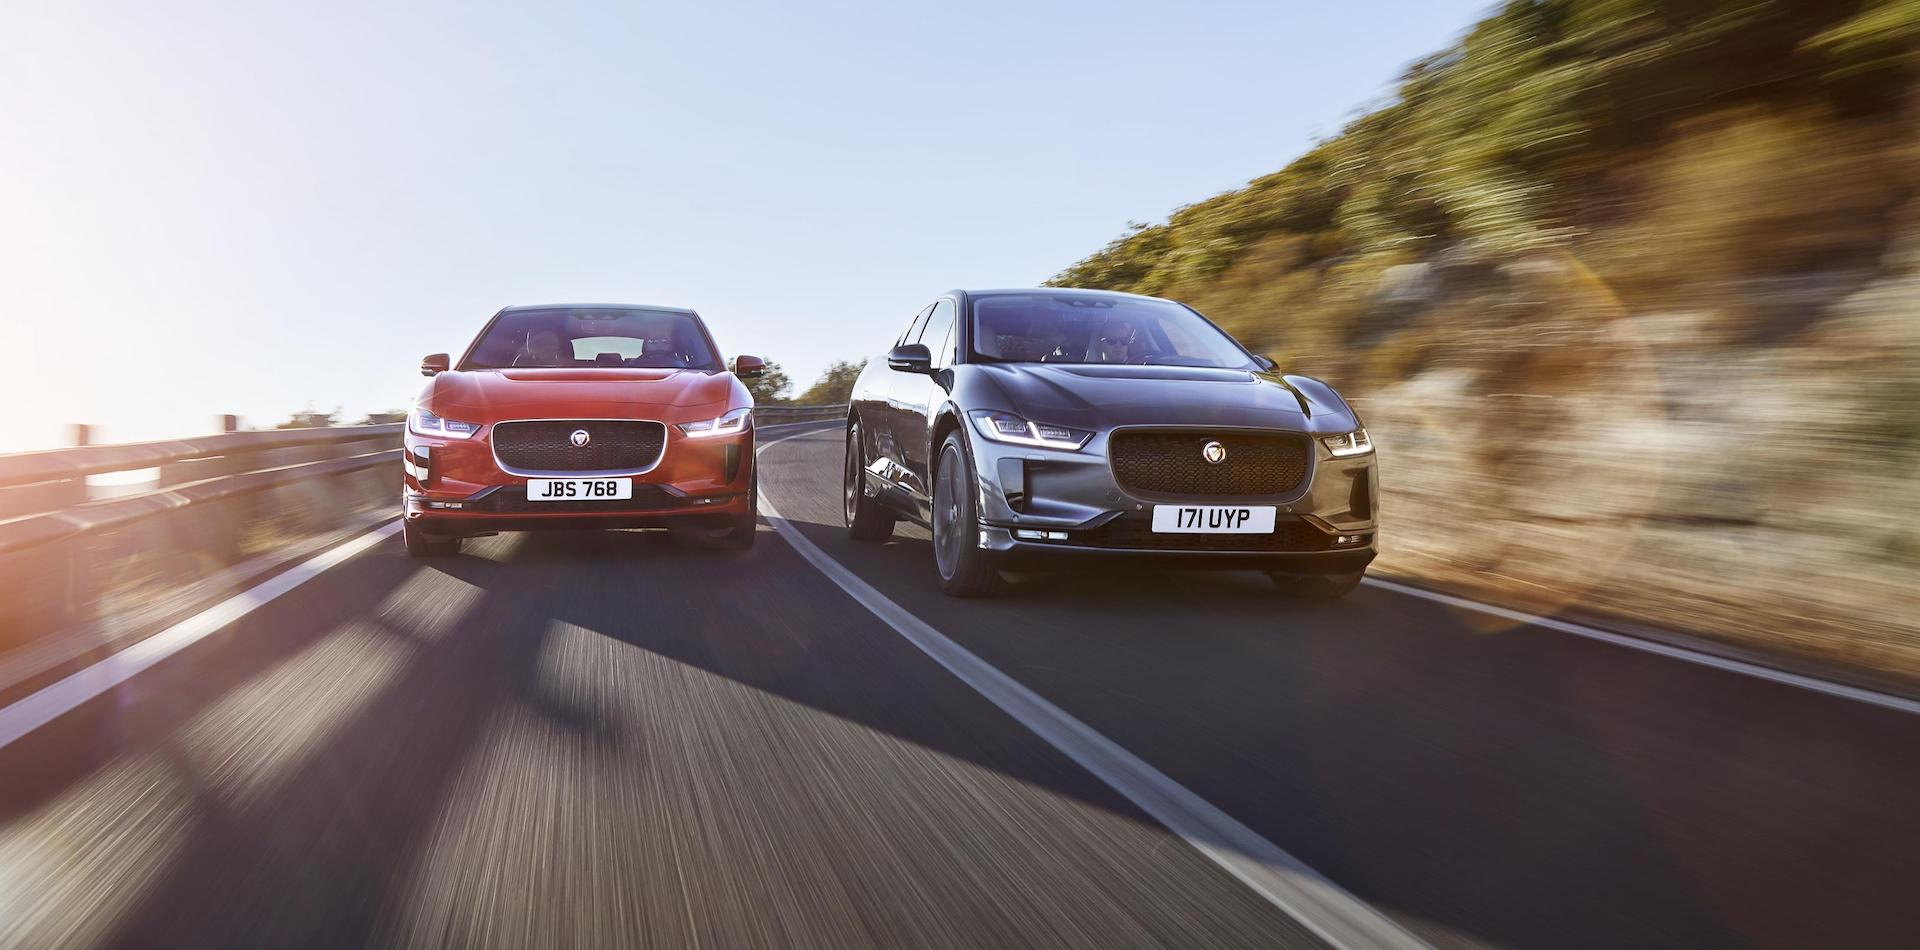 The new Jaguar i-Pace is available to order now